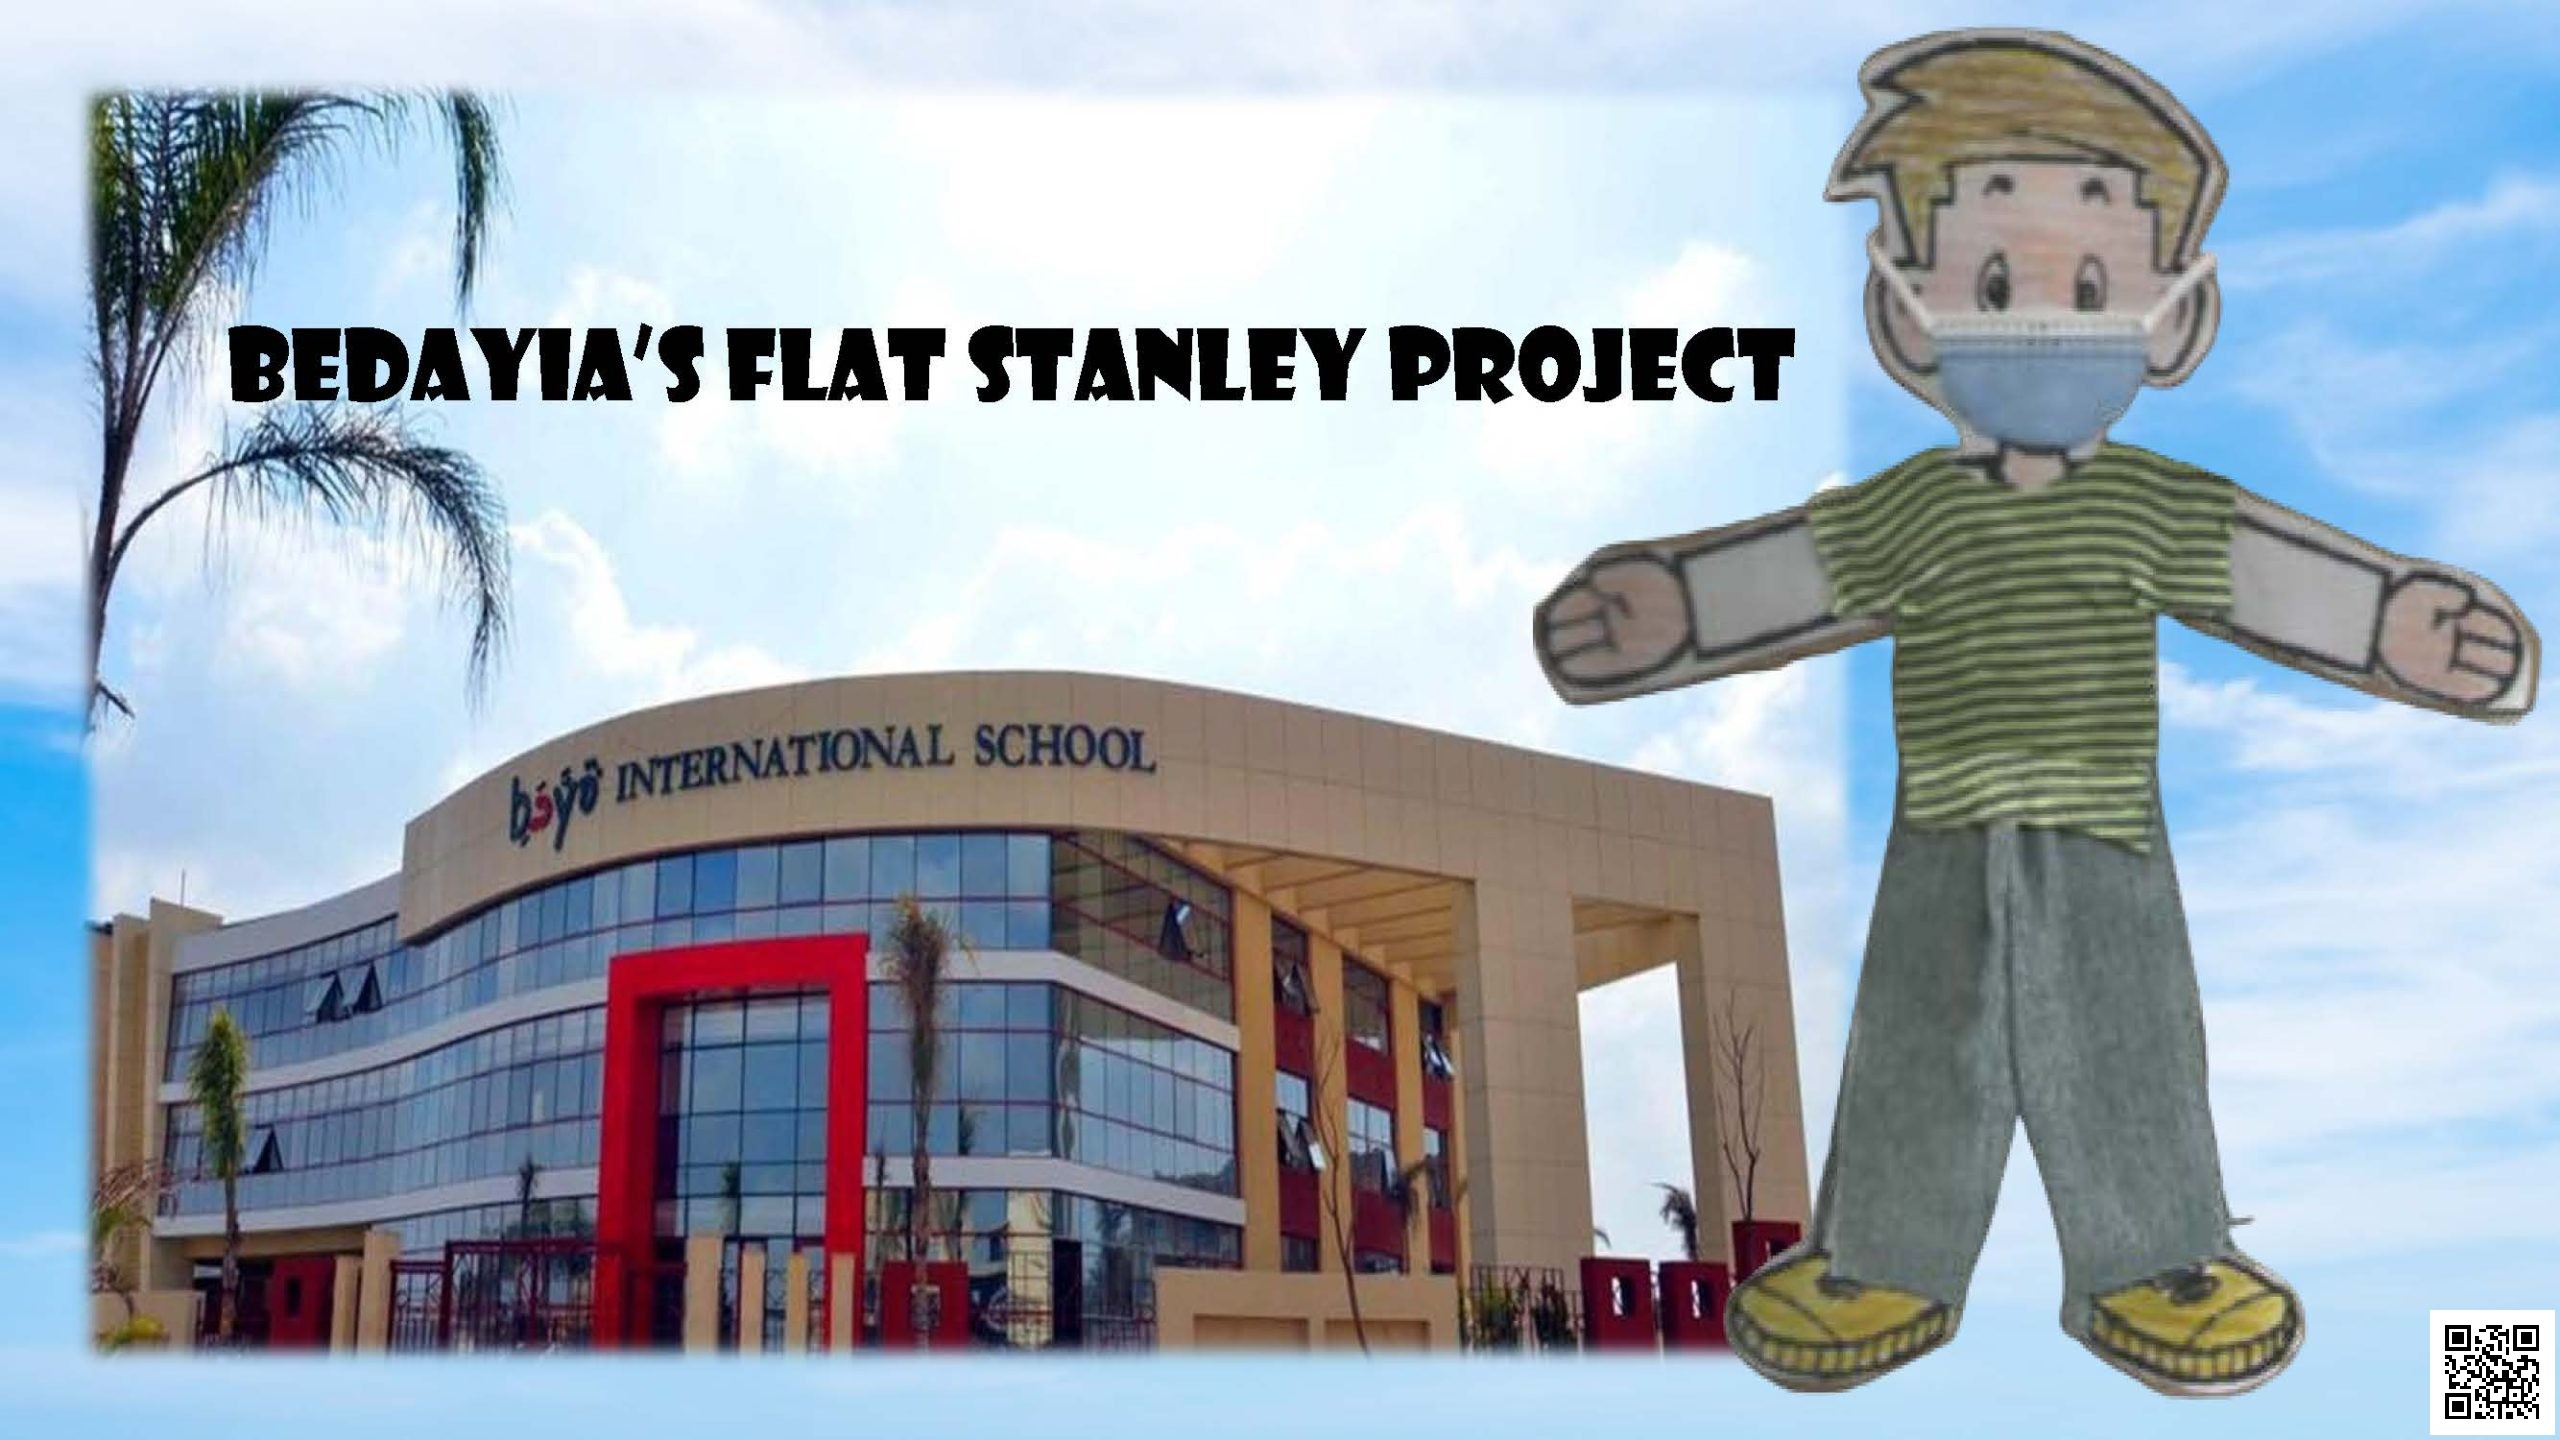 Bedayia's Flat Stanley Project